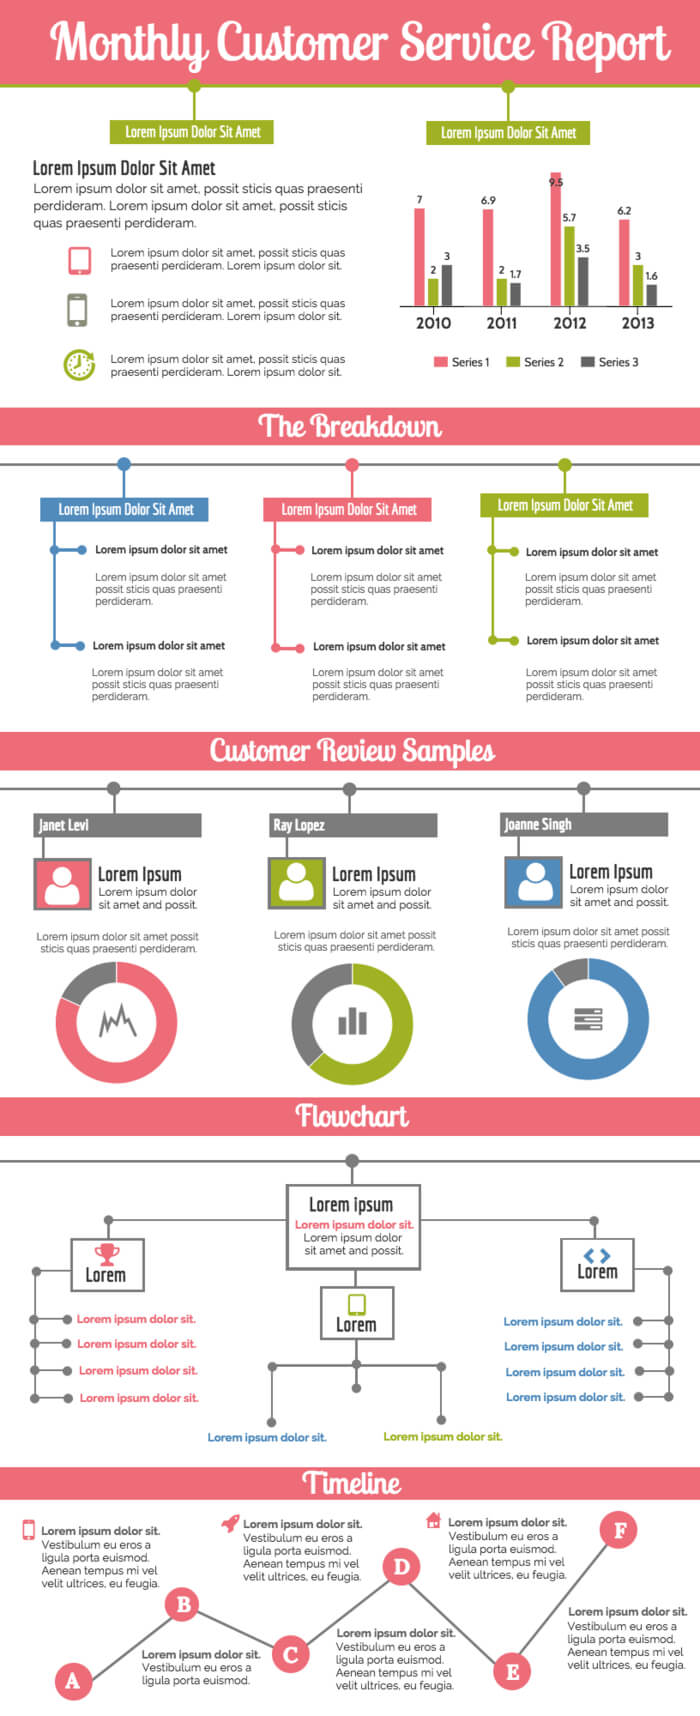 Monthly Customer Service Report Template - Venngage Throughout Service Review Report Template